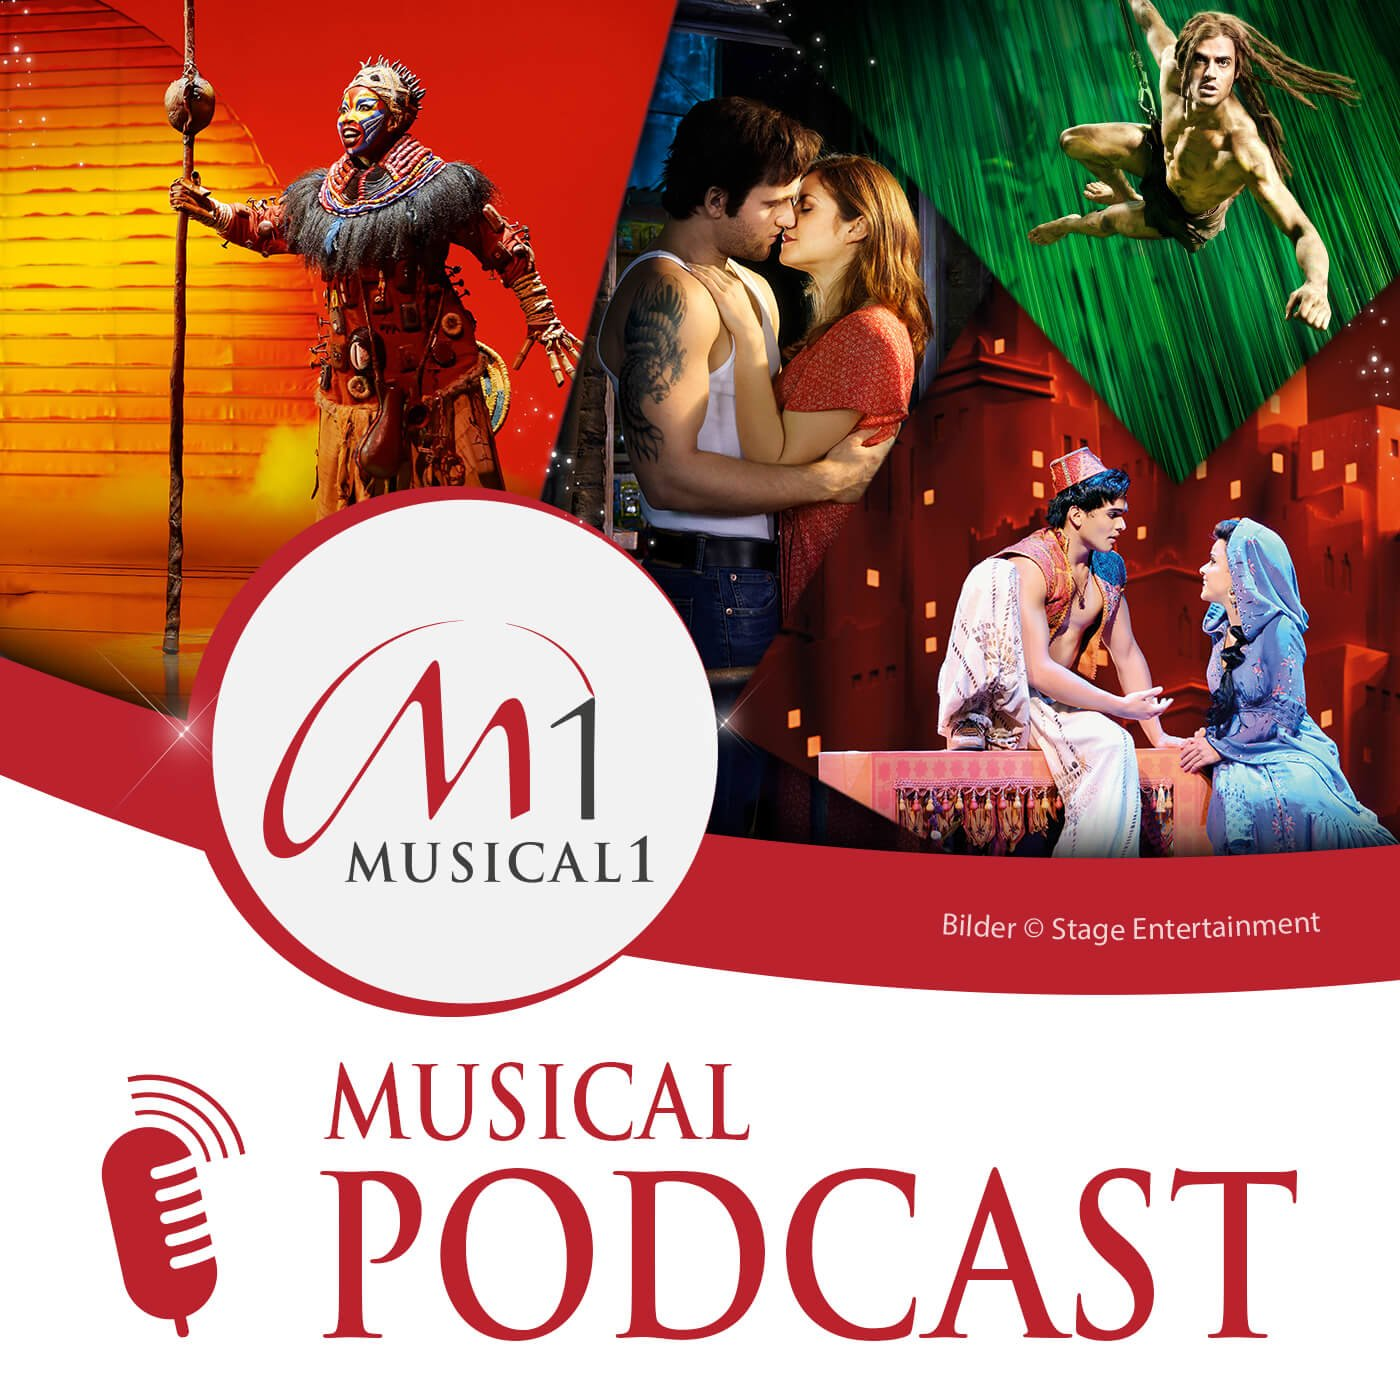 Musical1 Podcast